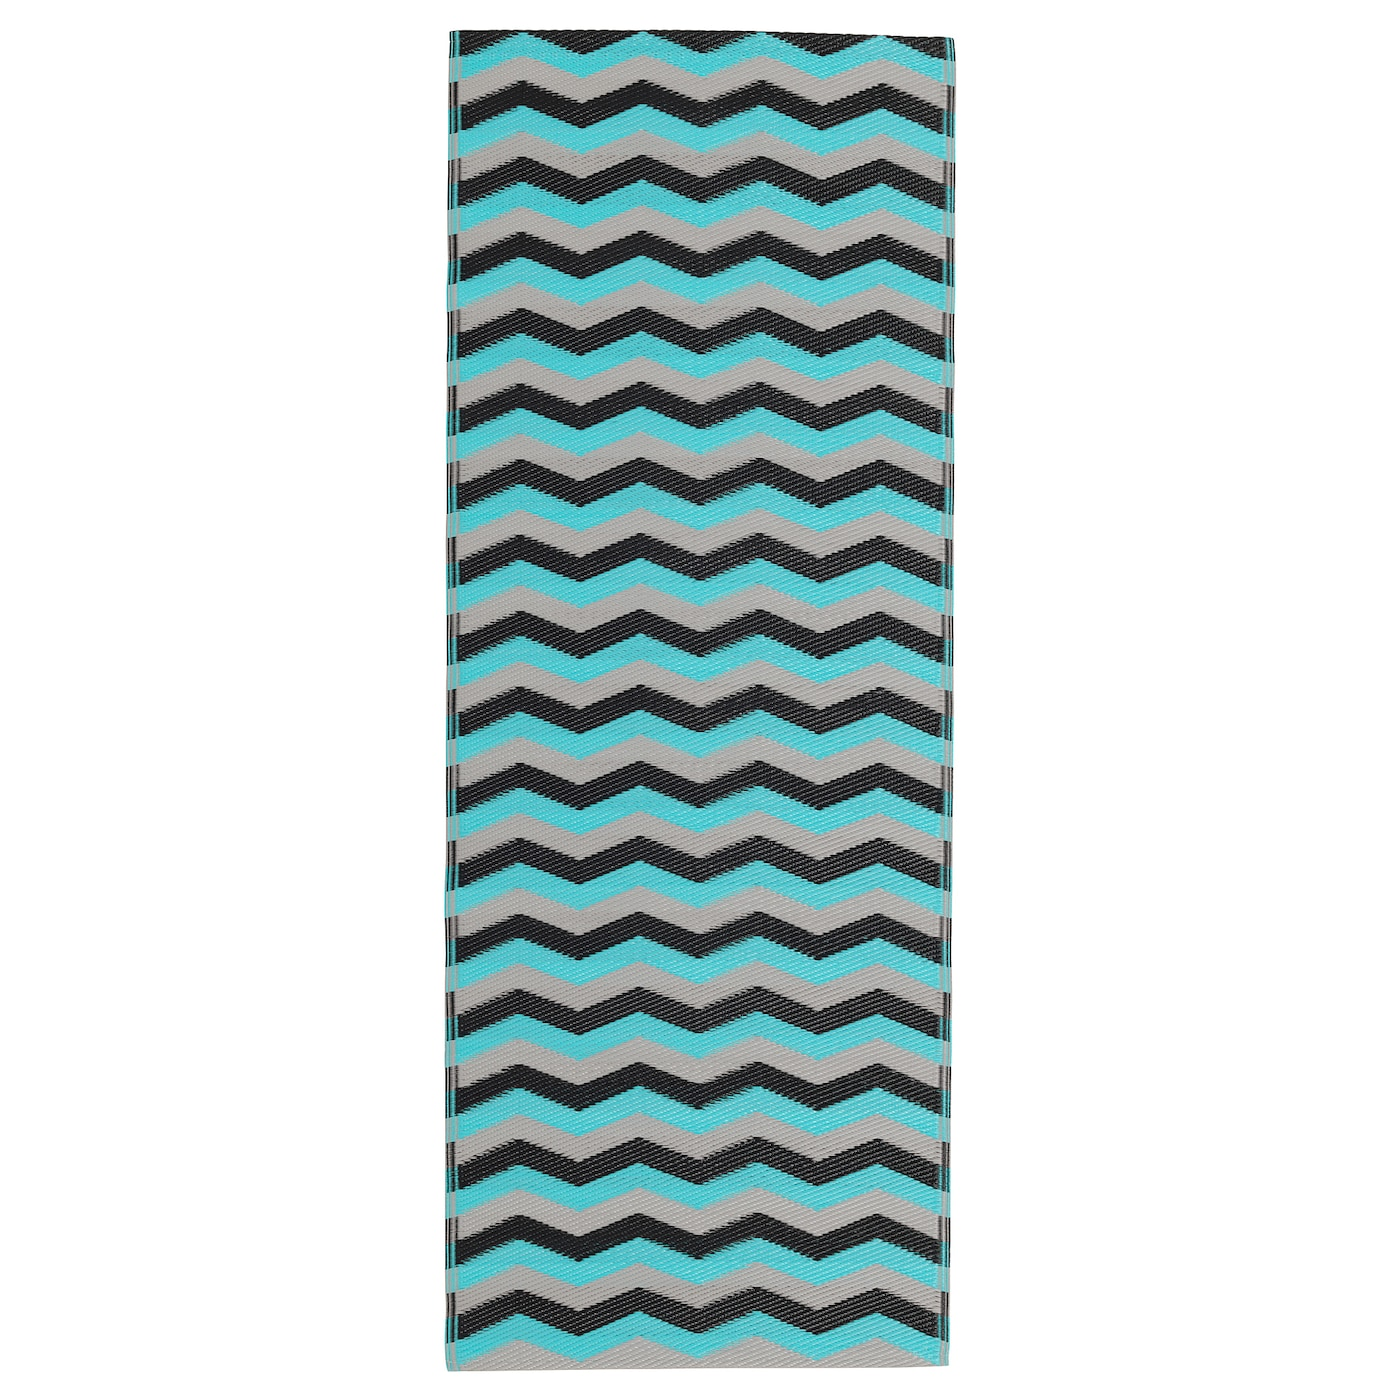 sommar 2018 tapis tiss plat int ext rieur turquoise 75x200 cm ikea. Black Bedroom Furniture Sets. Home Design Ideas